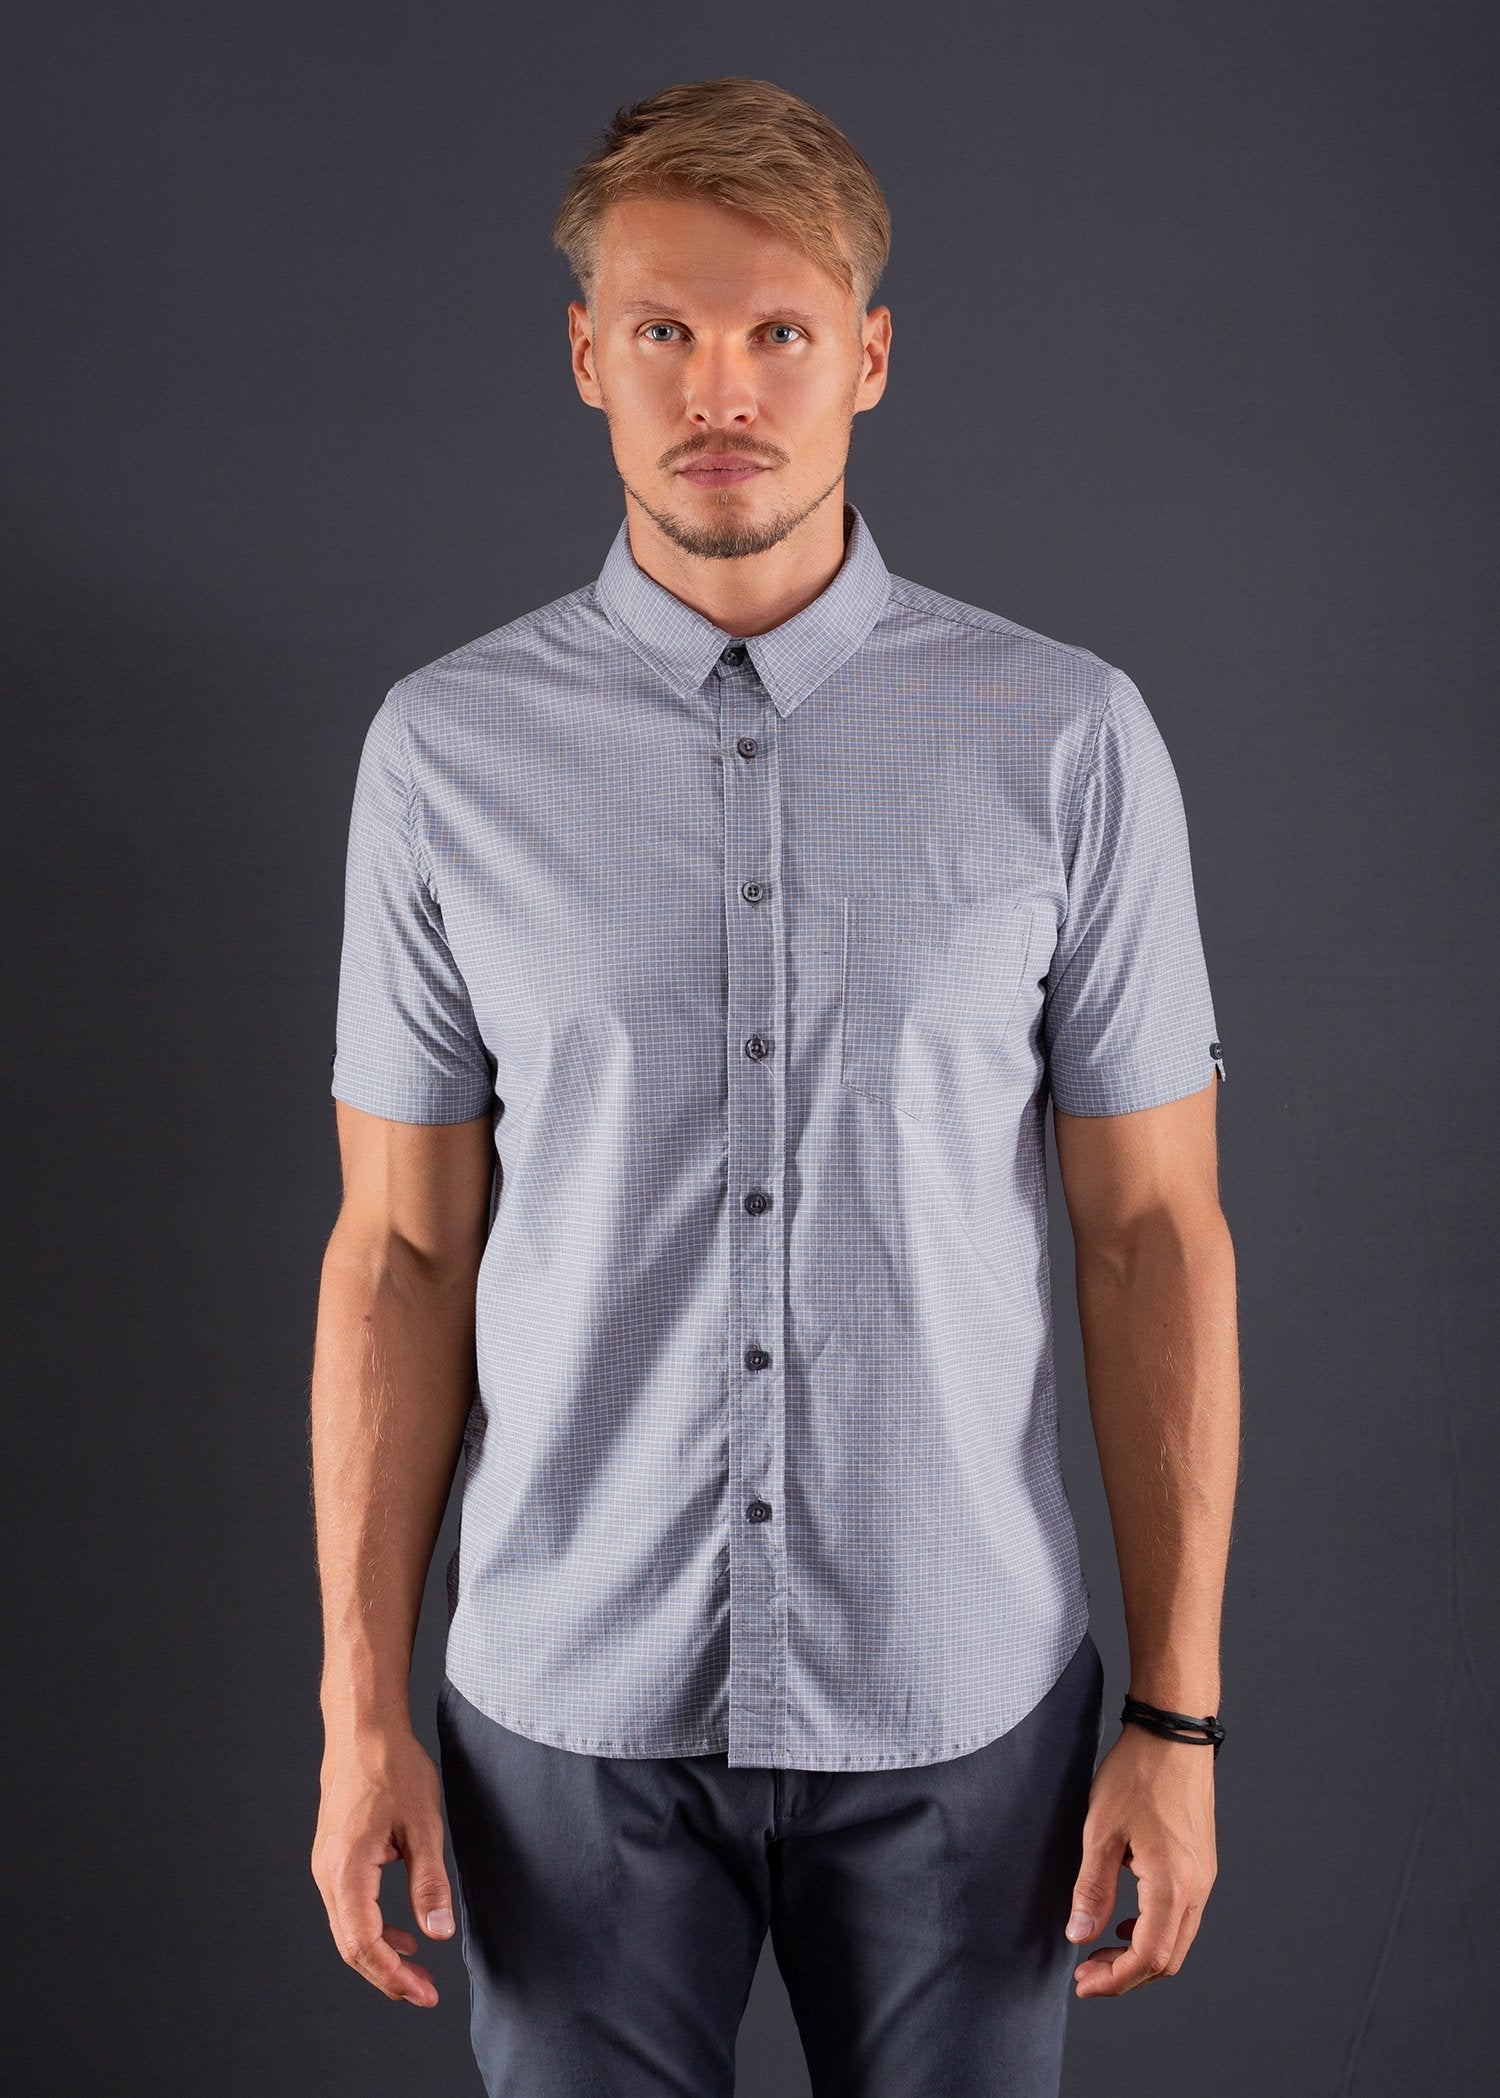 Casual Wear S/S Shirt